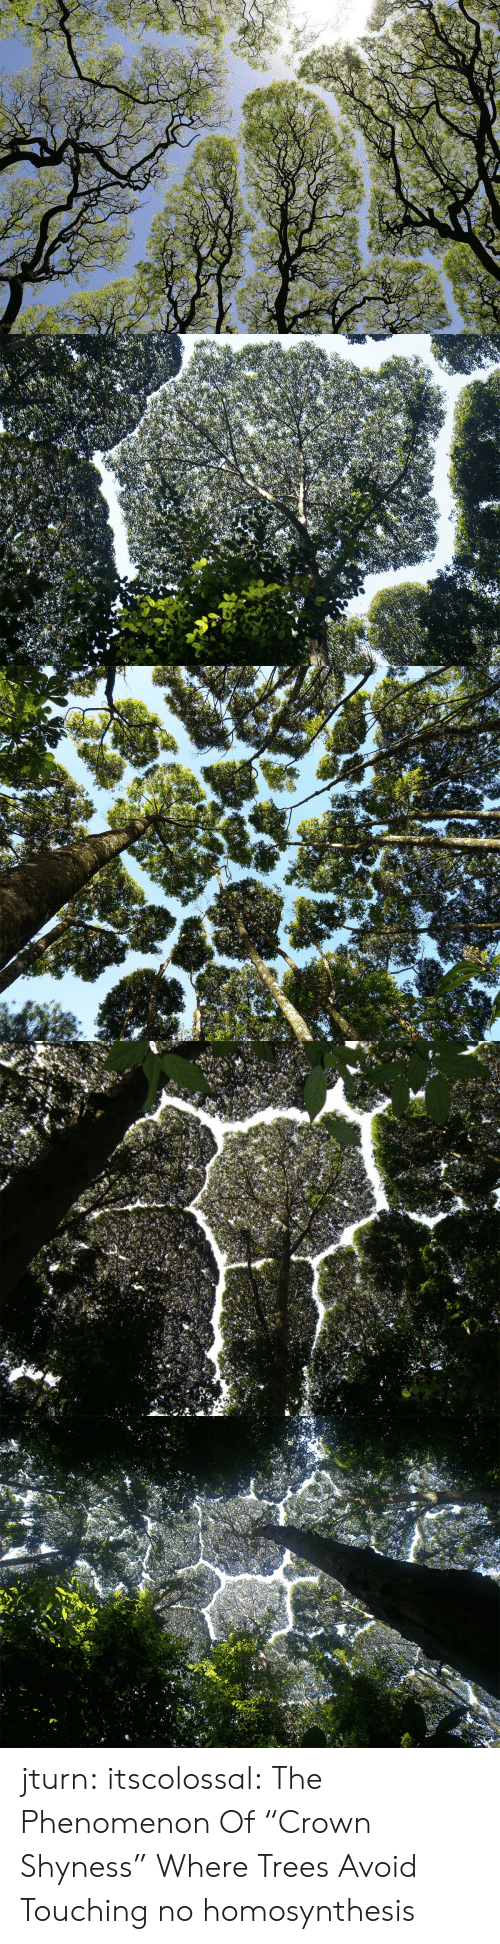 "Tumblr, Blog, and Http: jturn: itscolossal: The Phenomenon Of ""Crown Shyness"" Where Trees Avoid Touching  no homosynthesis"